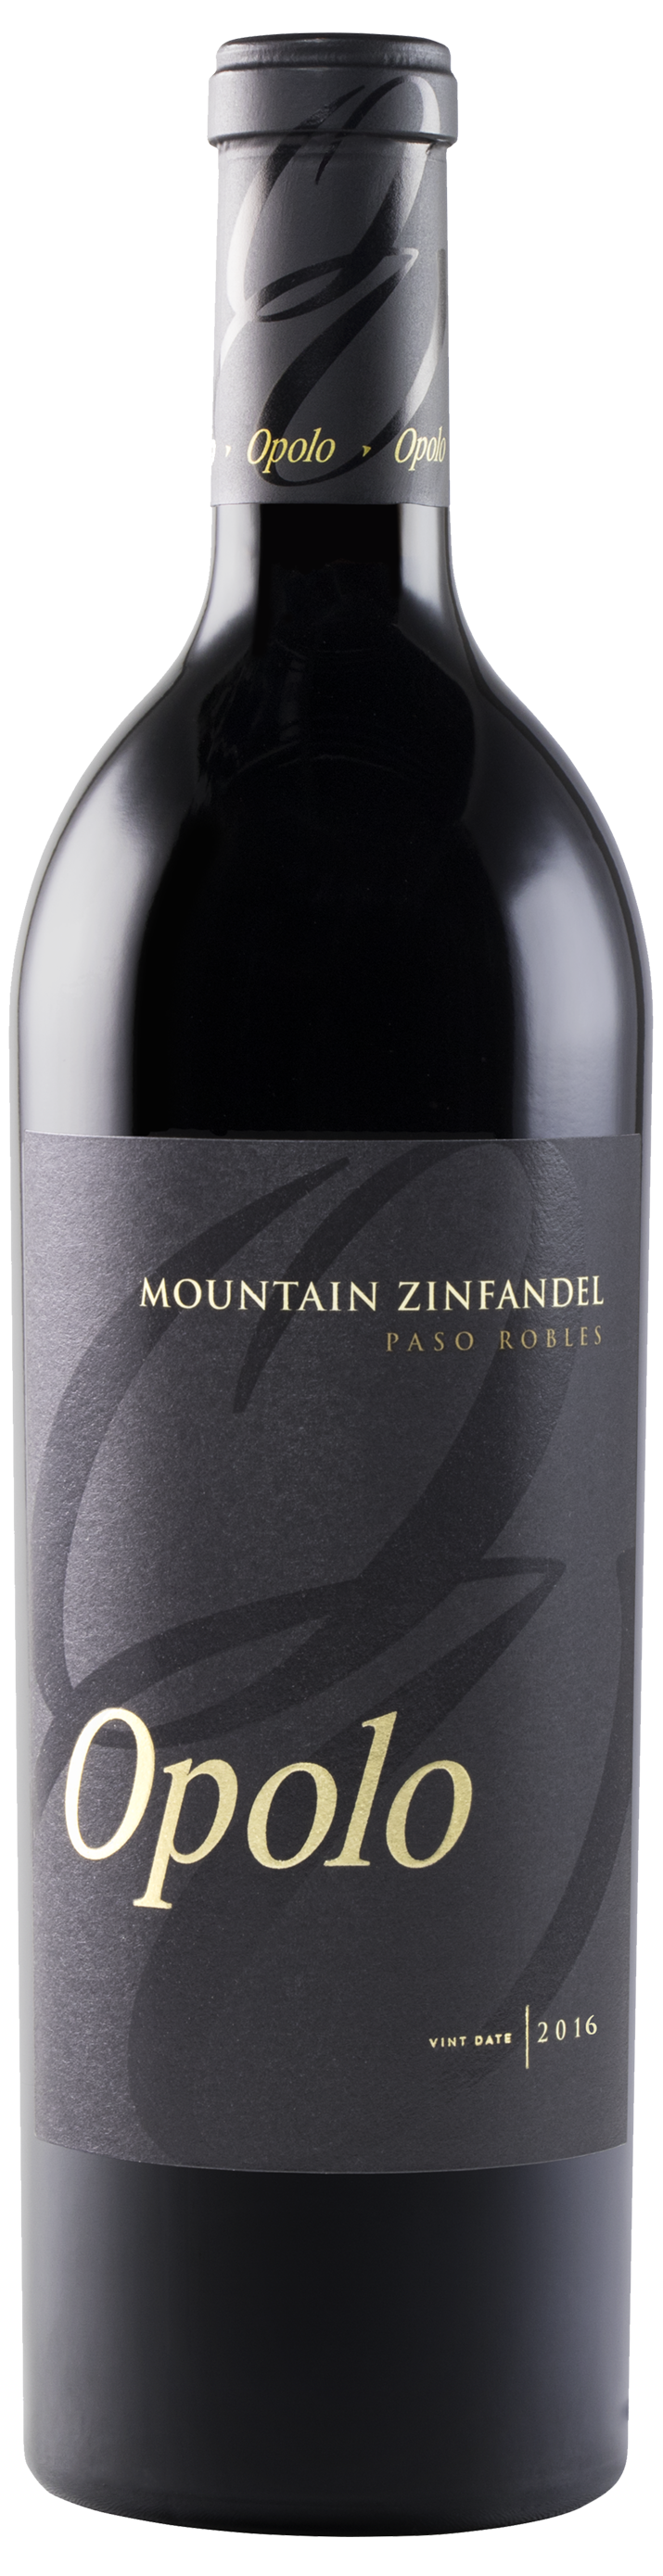 2016 Mountain Zinfandel Product Image